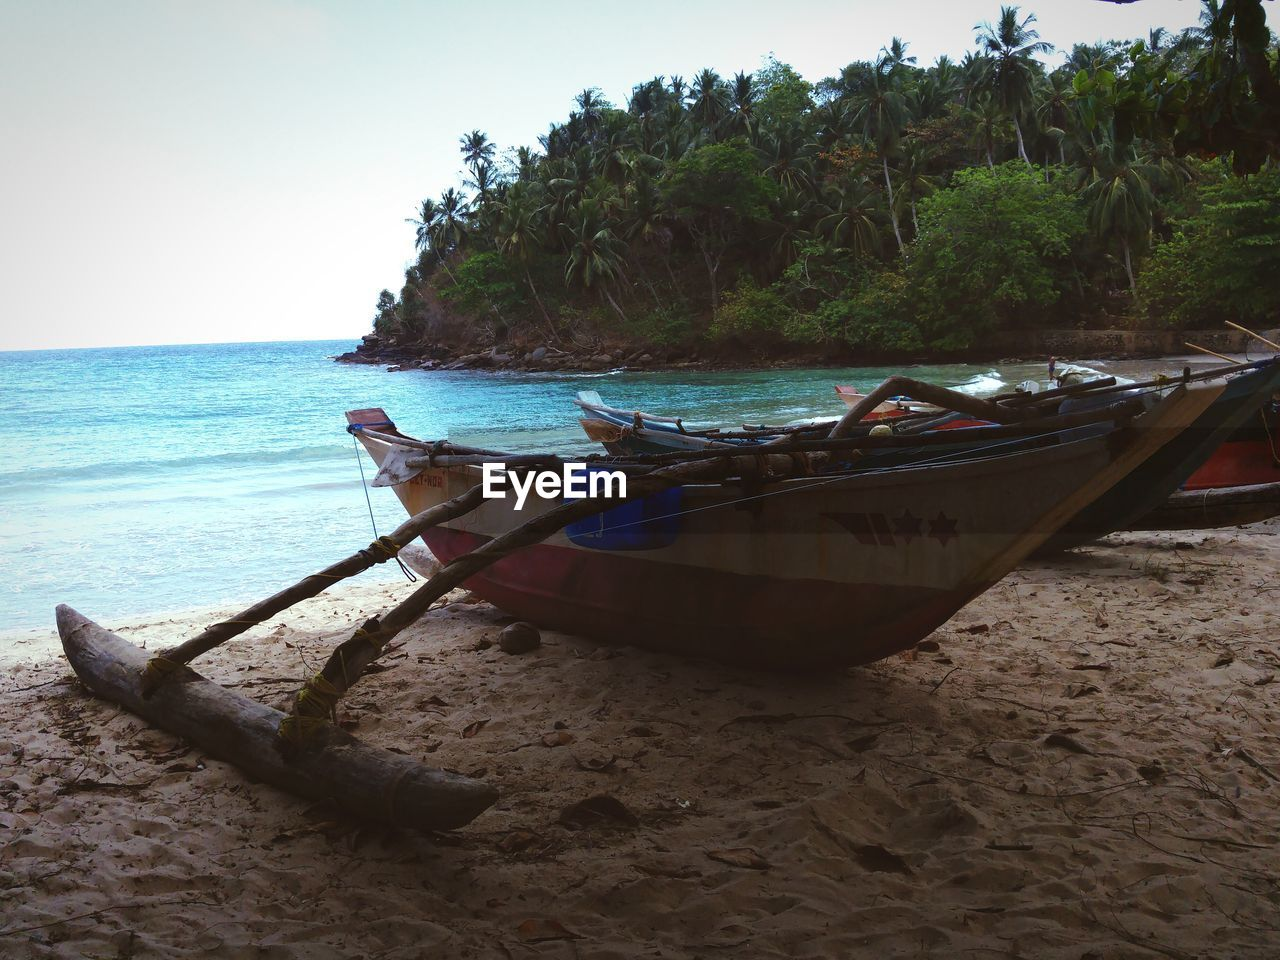 beach, sea, nature, water, shore, sand, nautical vessel, moored, longtail boat, scenics, beauty in nature, tranquil scene, transportation, mode of transport, horizon over water, tranquility, no people, outdoors, day, sky, clear sky, outrigger, tree